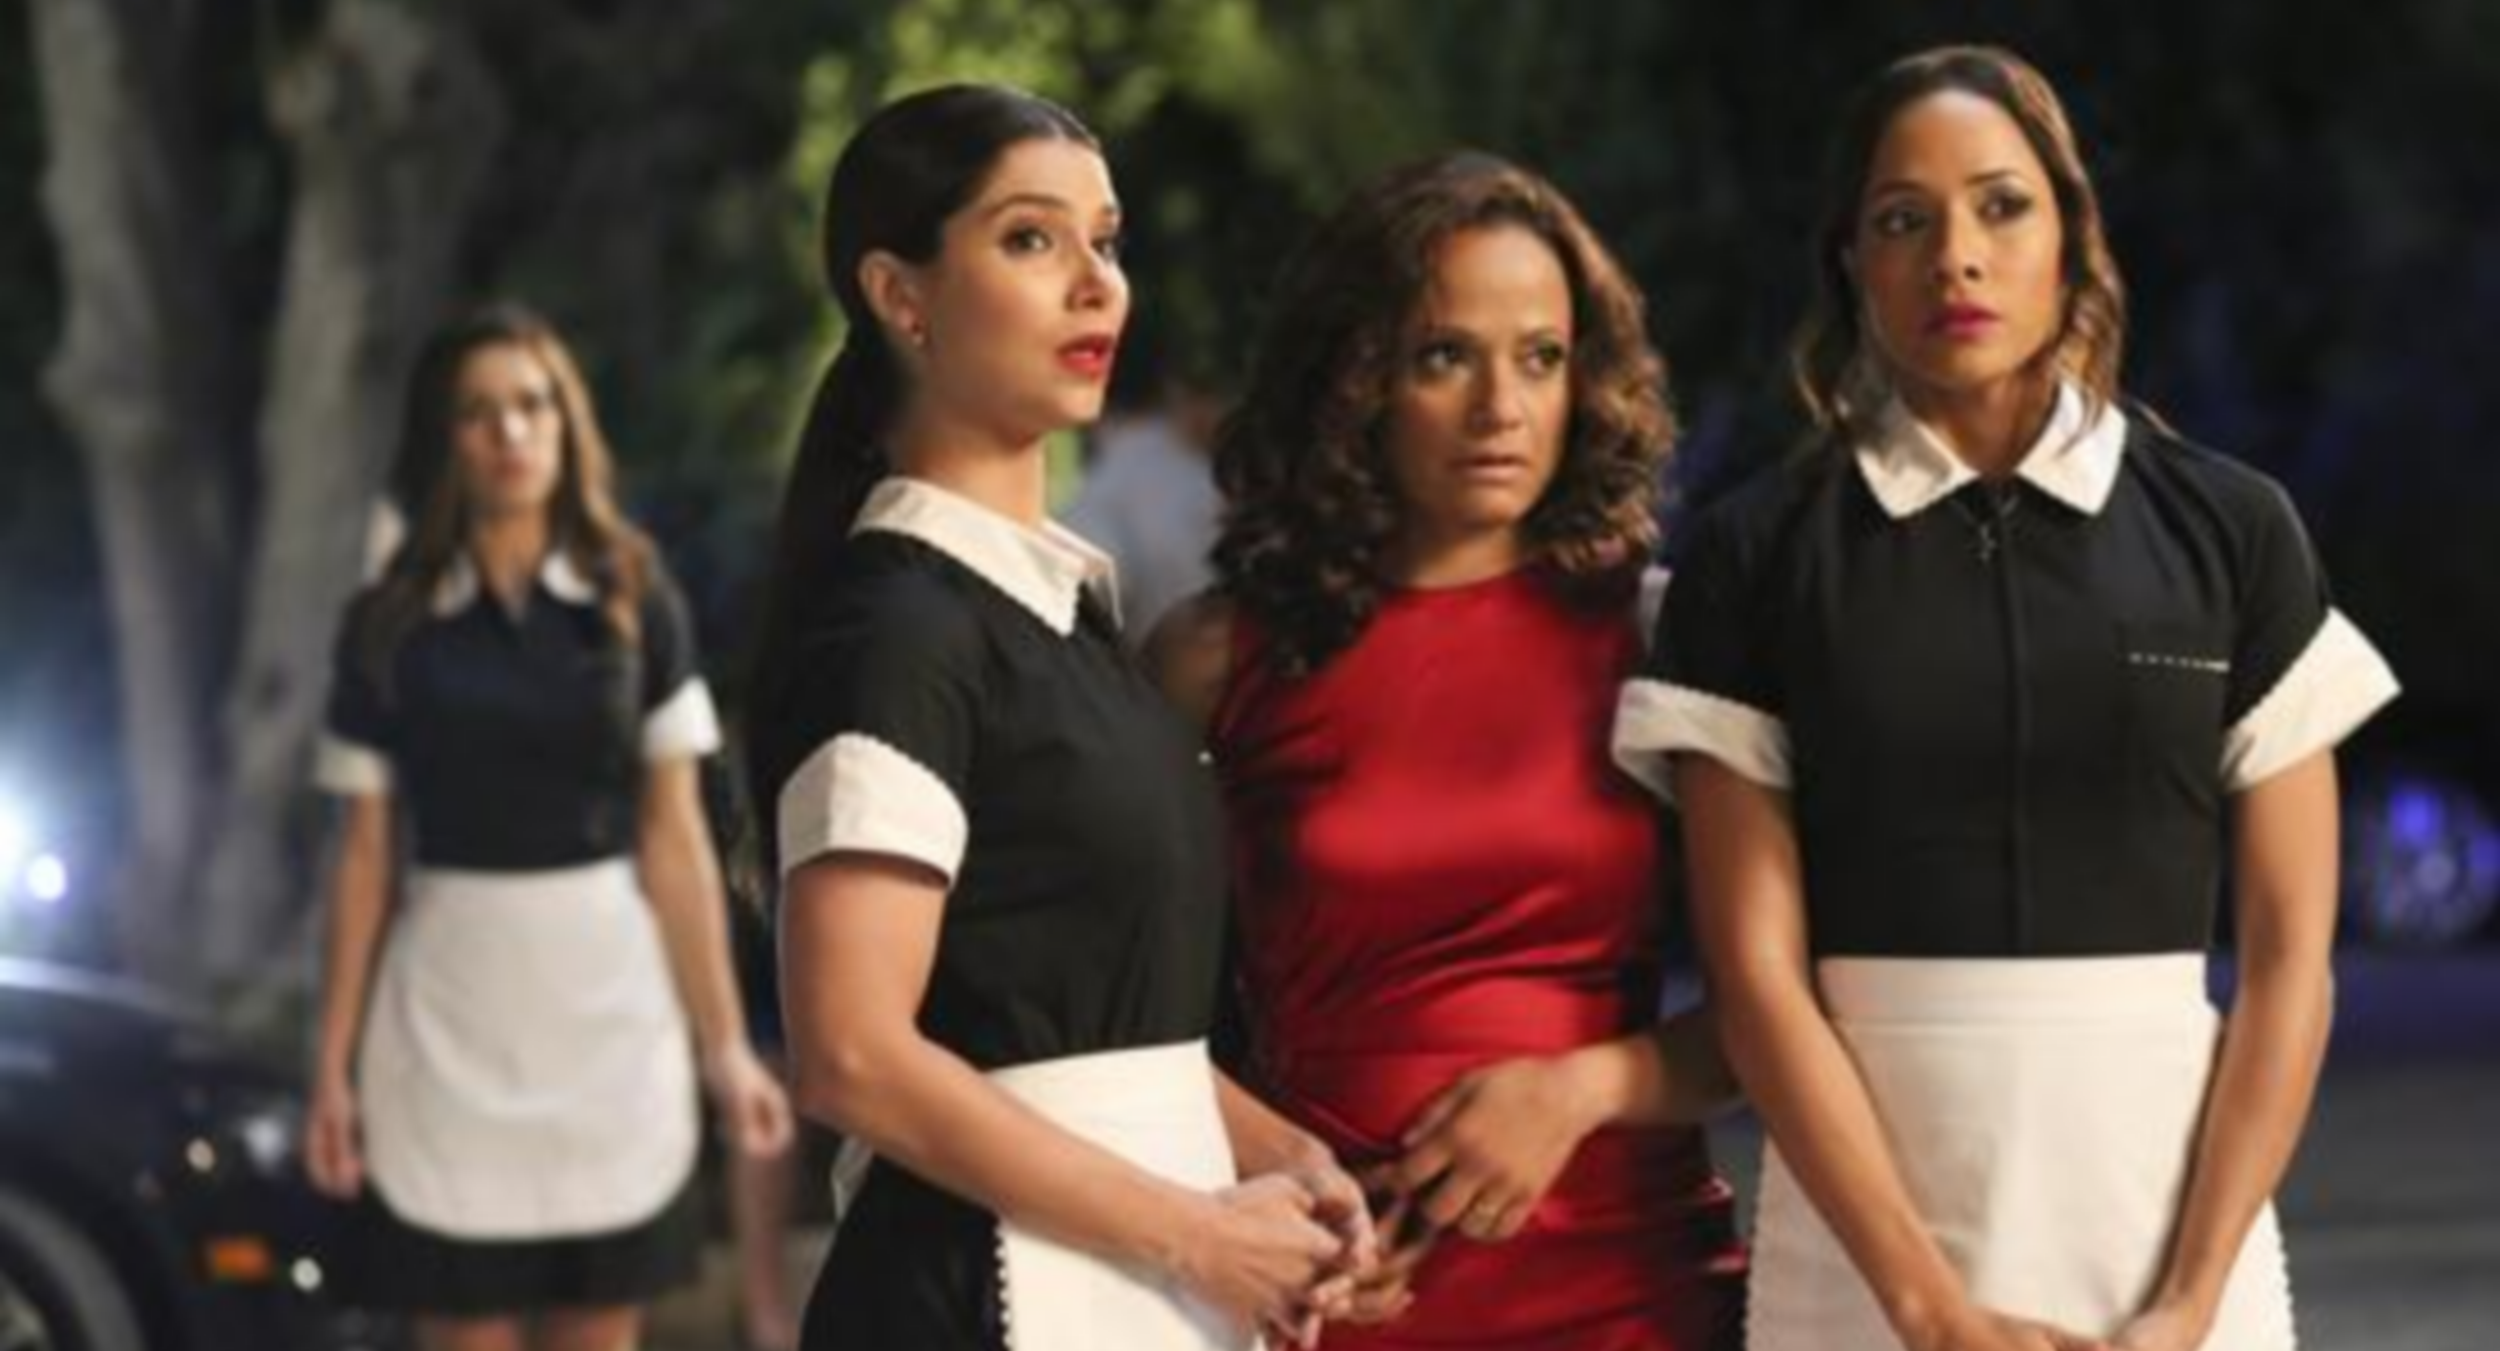 Totally Clean  sc 1 st  Devious Maids Wiki - Fandom & Totally Clean | Devious Maids Wiki | FANDOM powered by Wikia